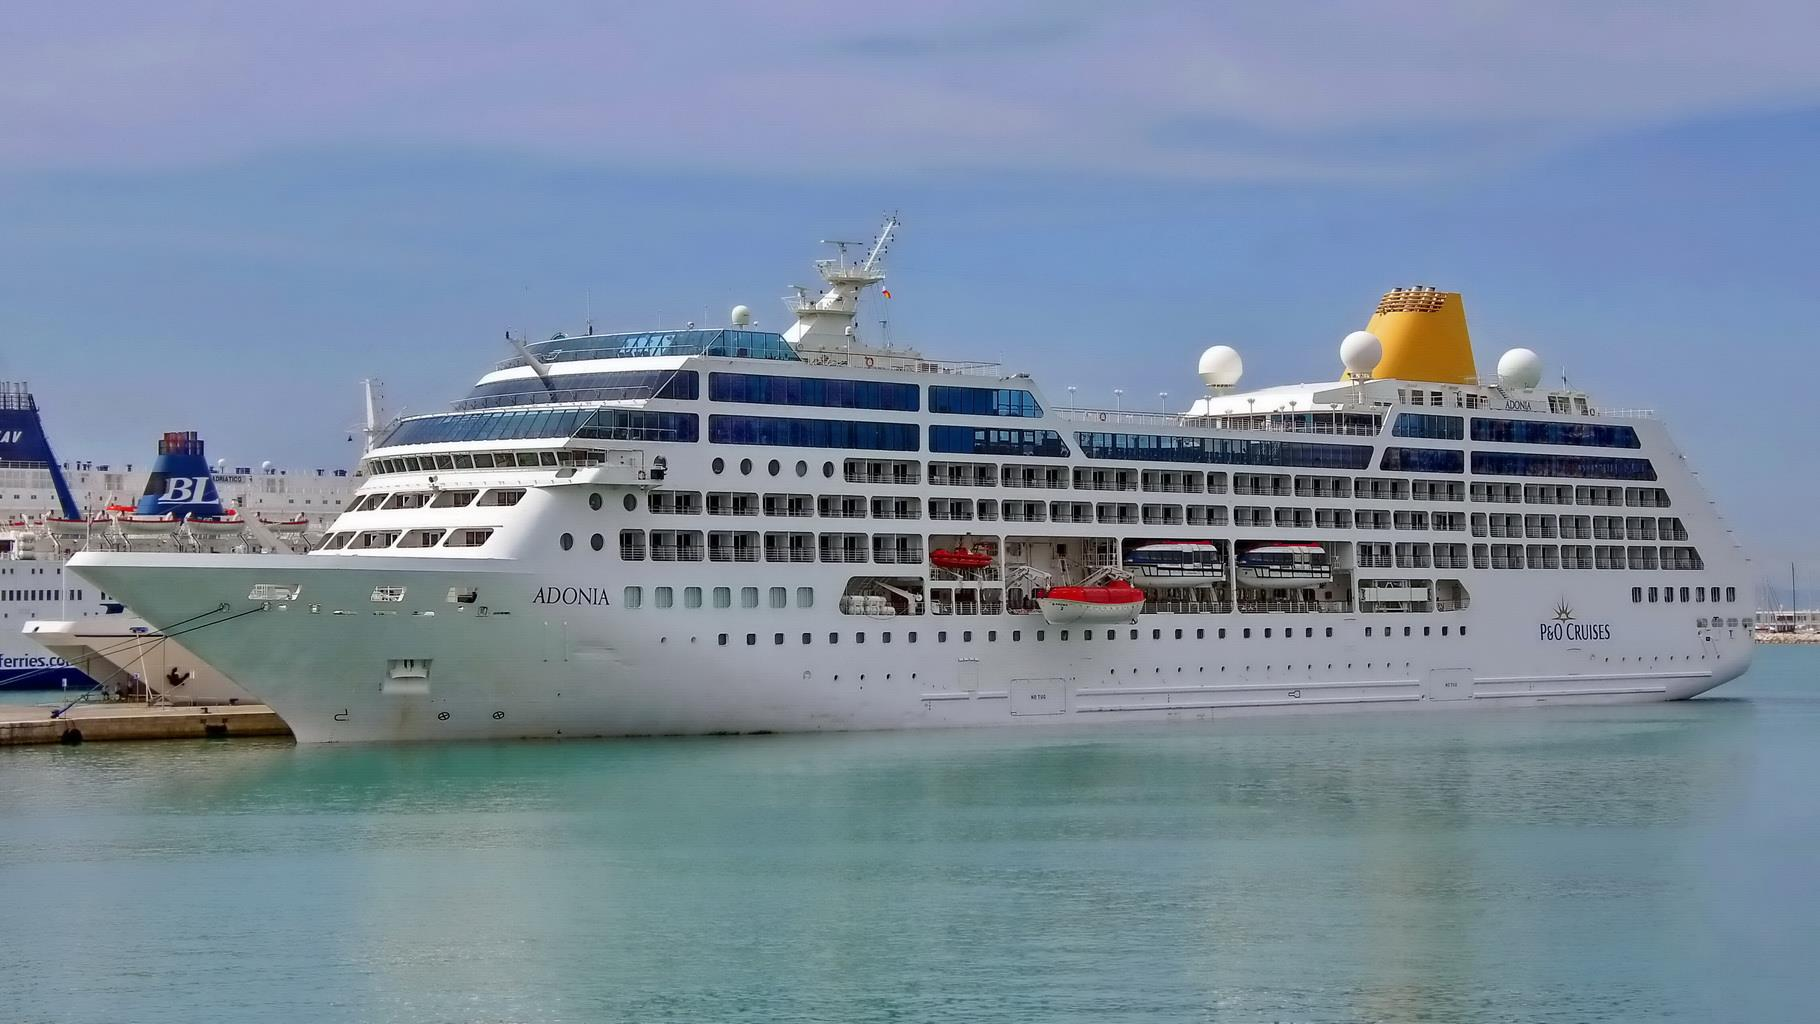 Carnival said the Adonia (in photo) will cruise every other week from Miami to Cuba. (Photo: Ivan T. - Own work, CC BY-SA 3.0.)